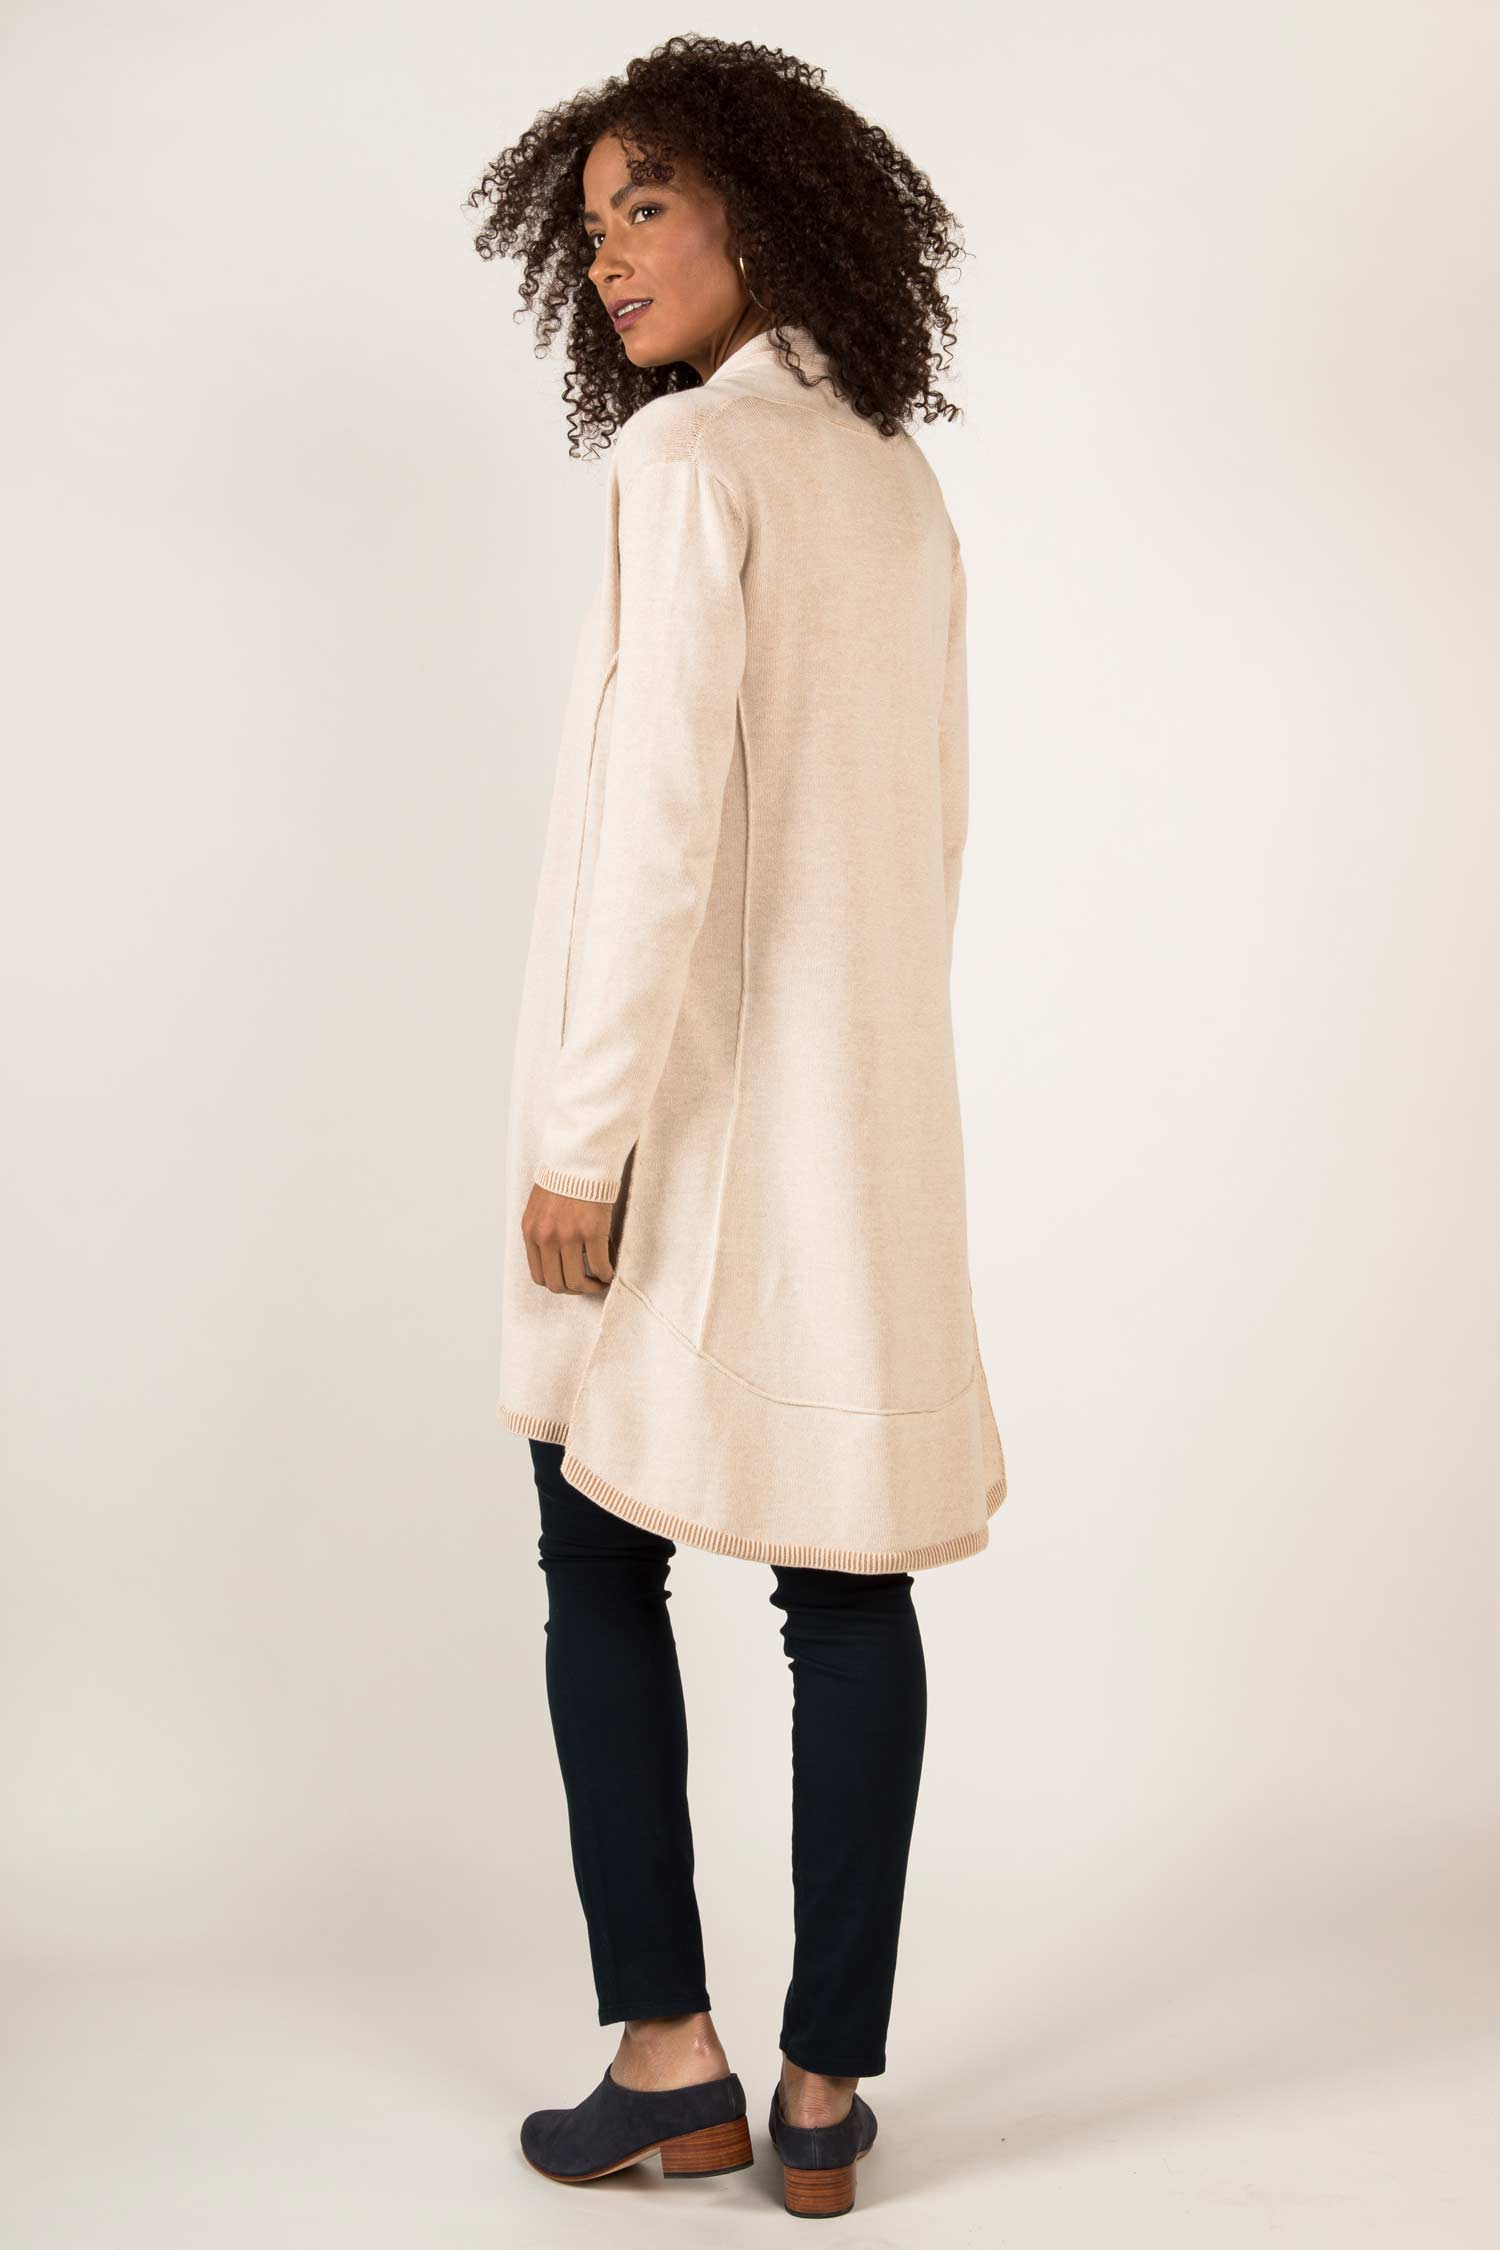 Womens Organic Cotton Sweater | Undyed Cardigan | Ivory Begie